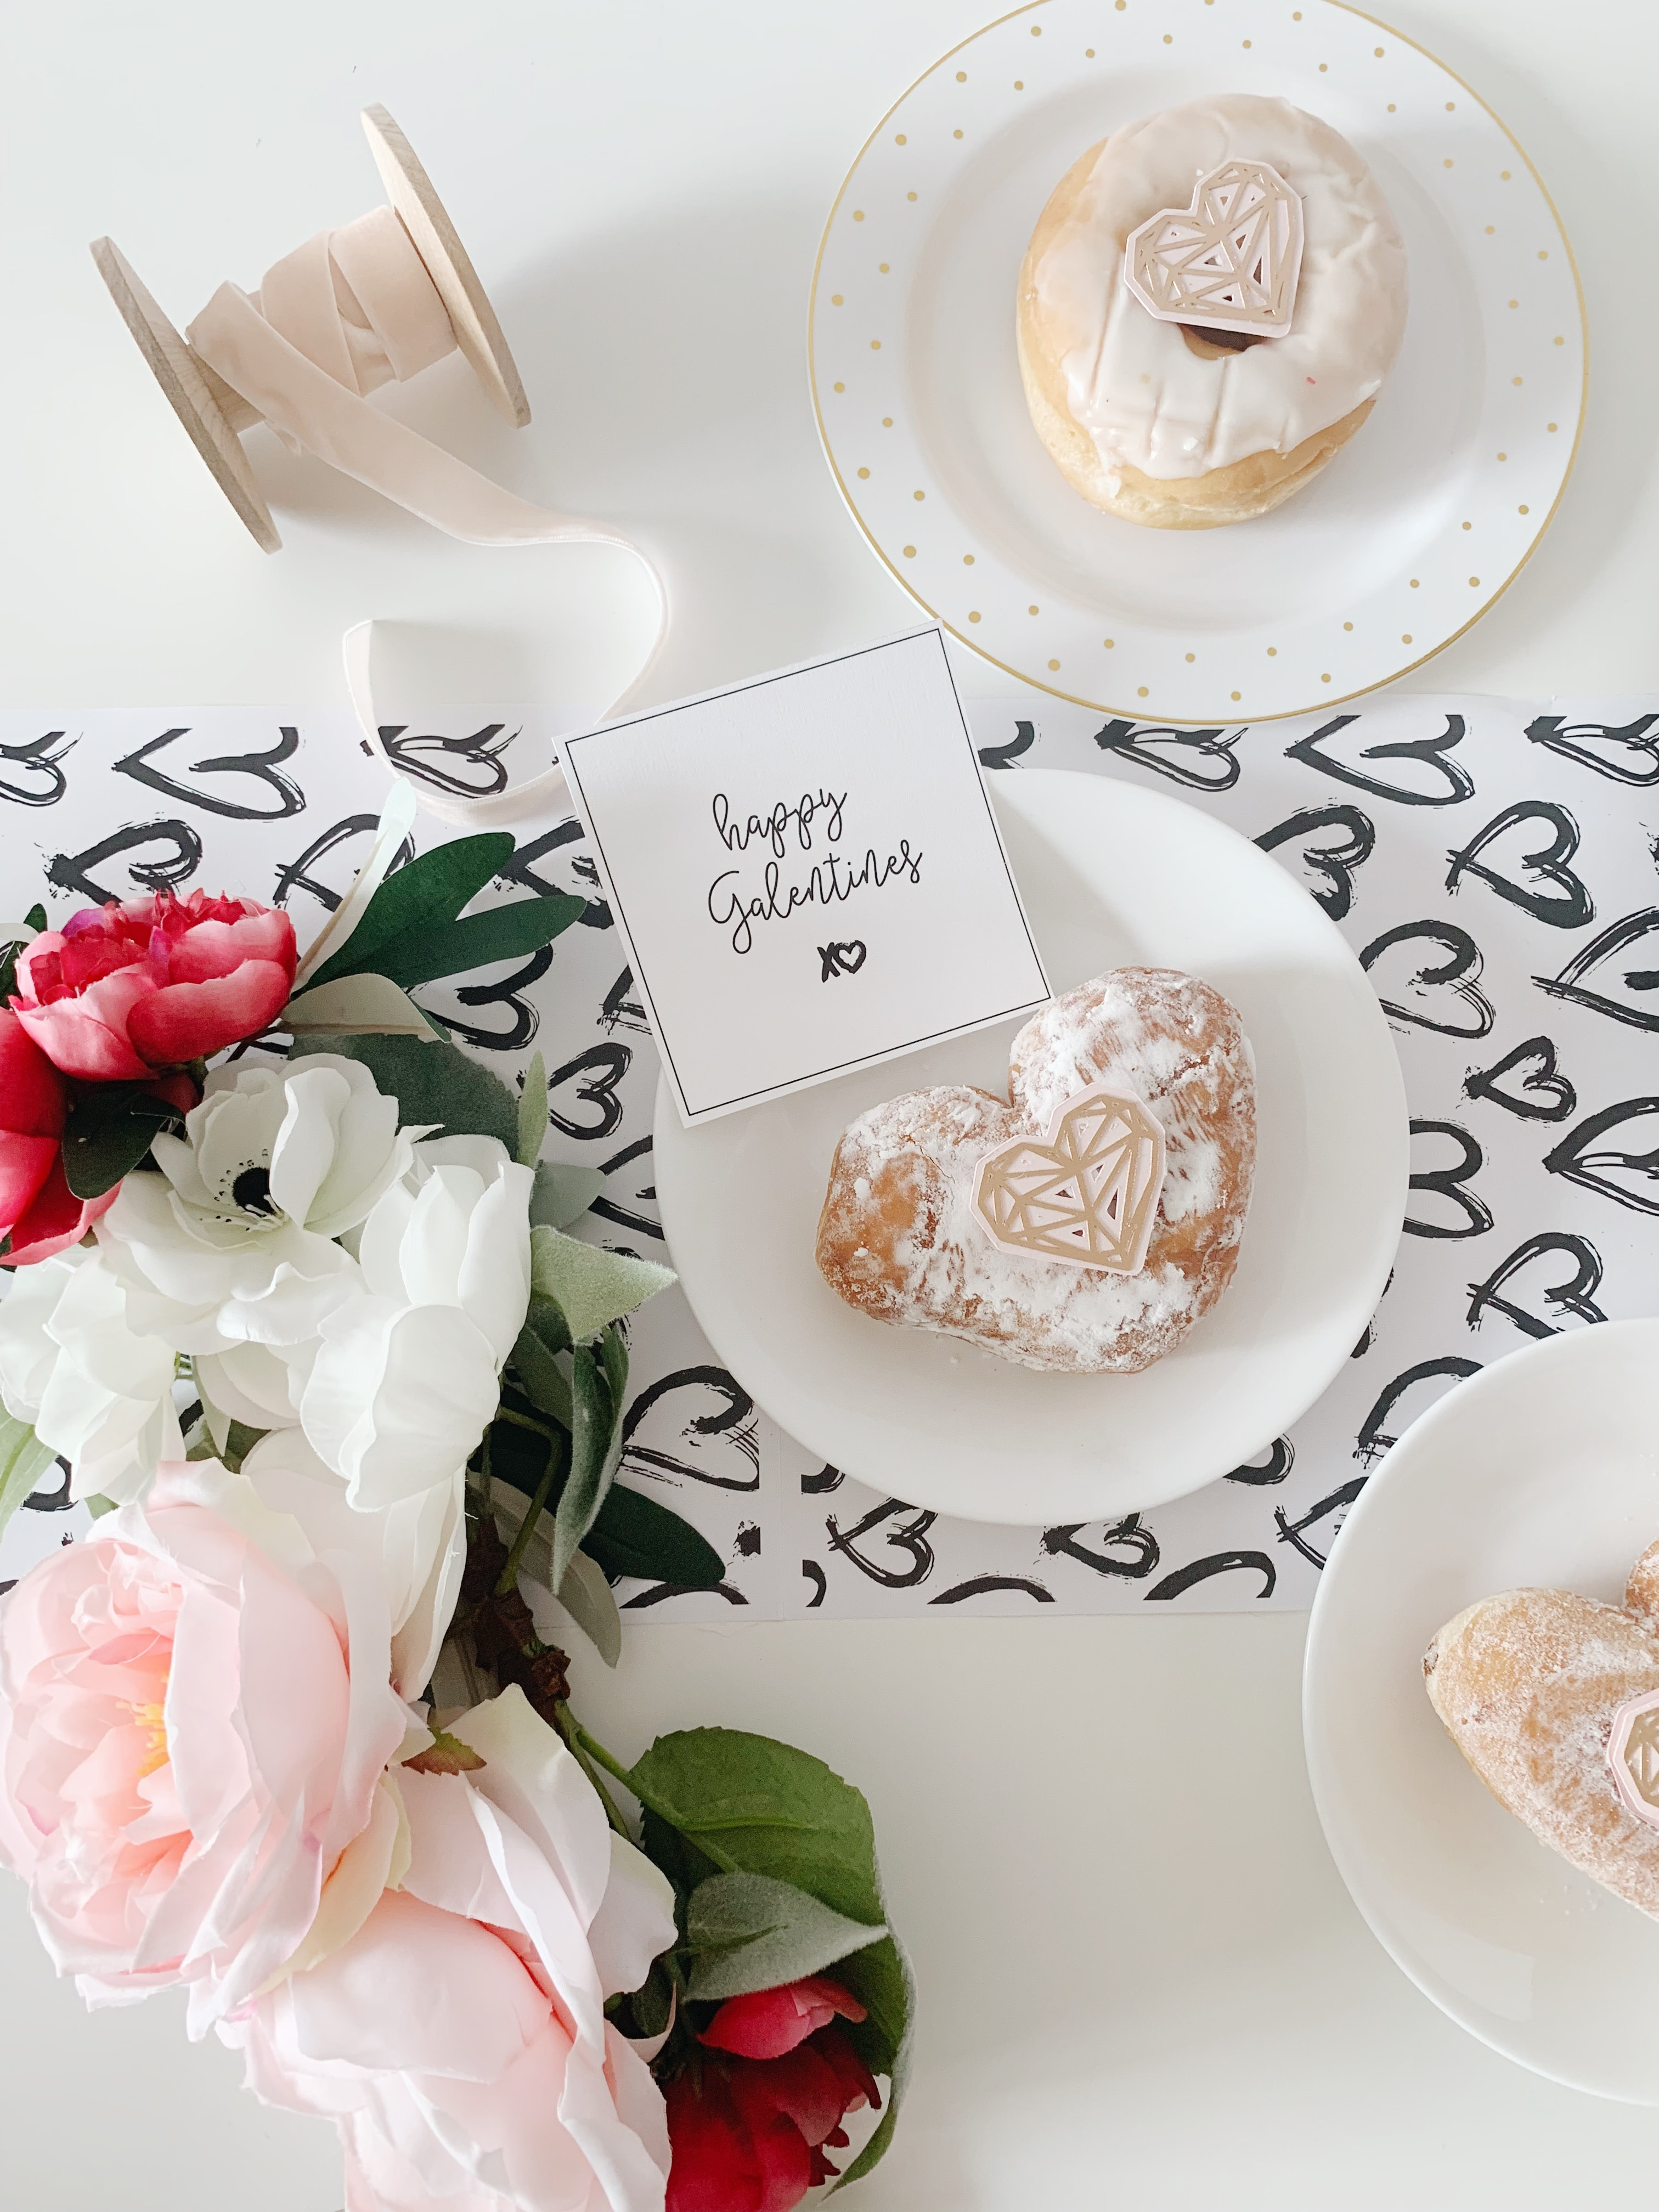 heart doughnut with powdered sugar on white plate